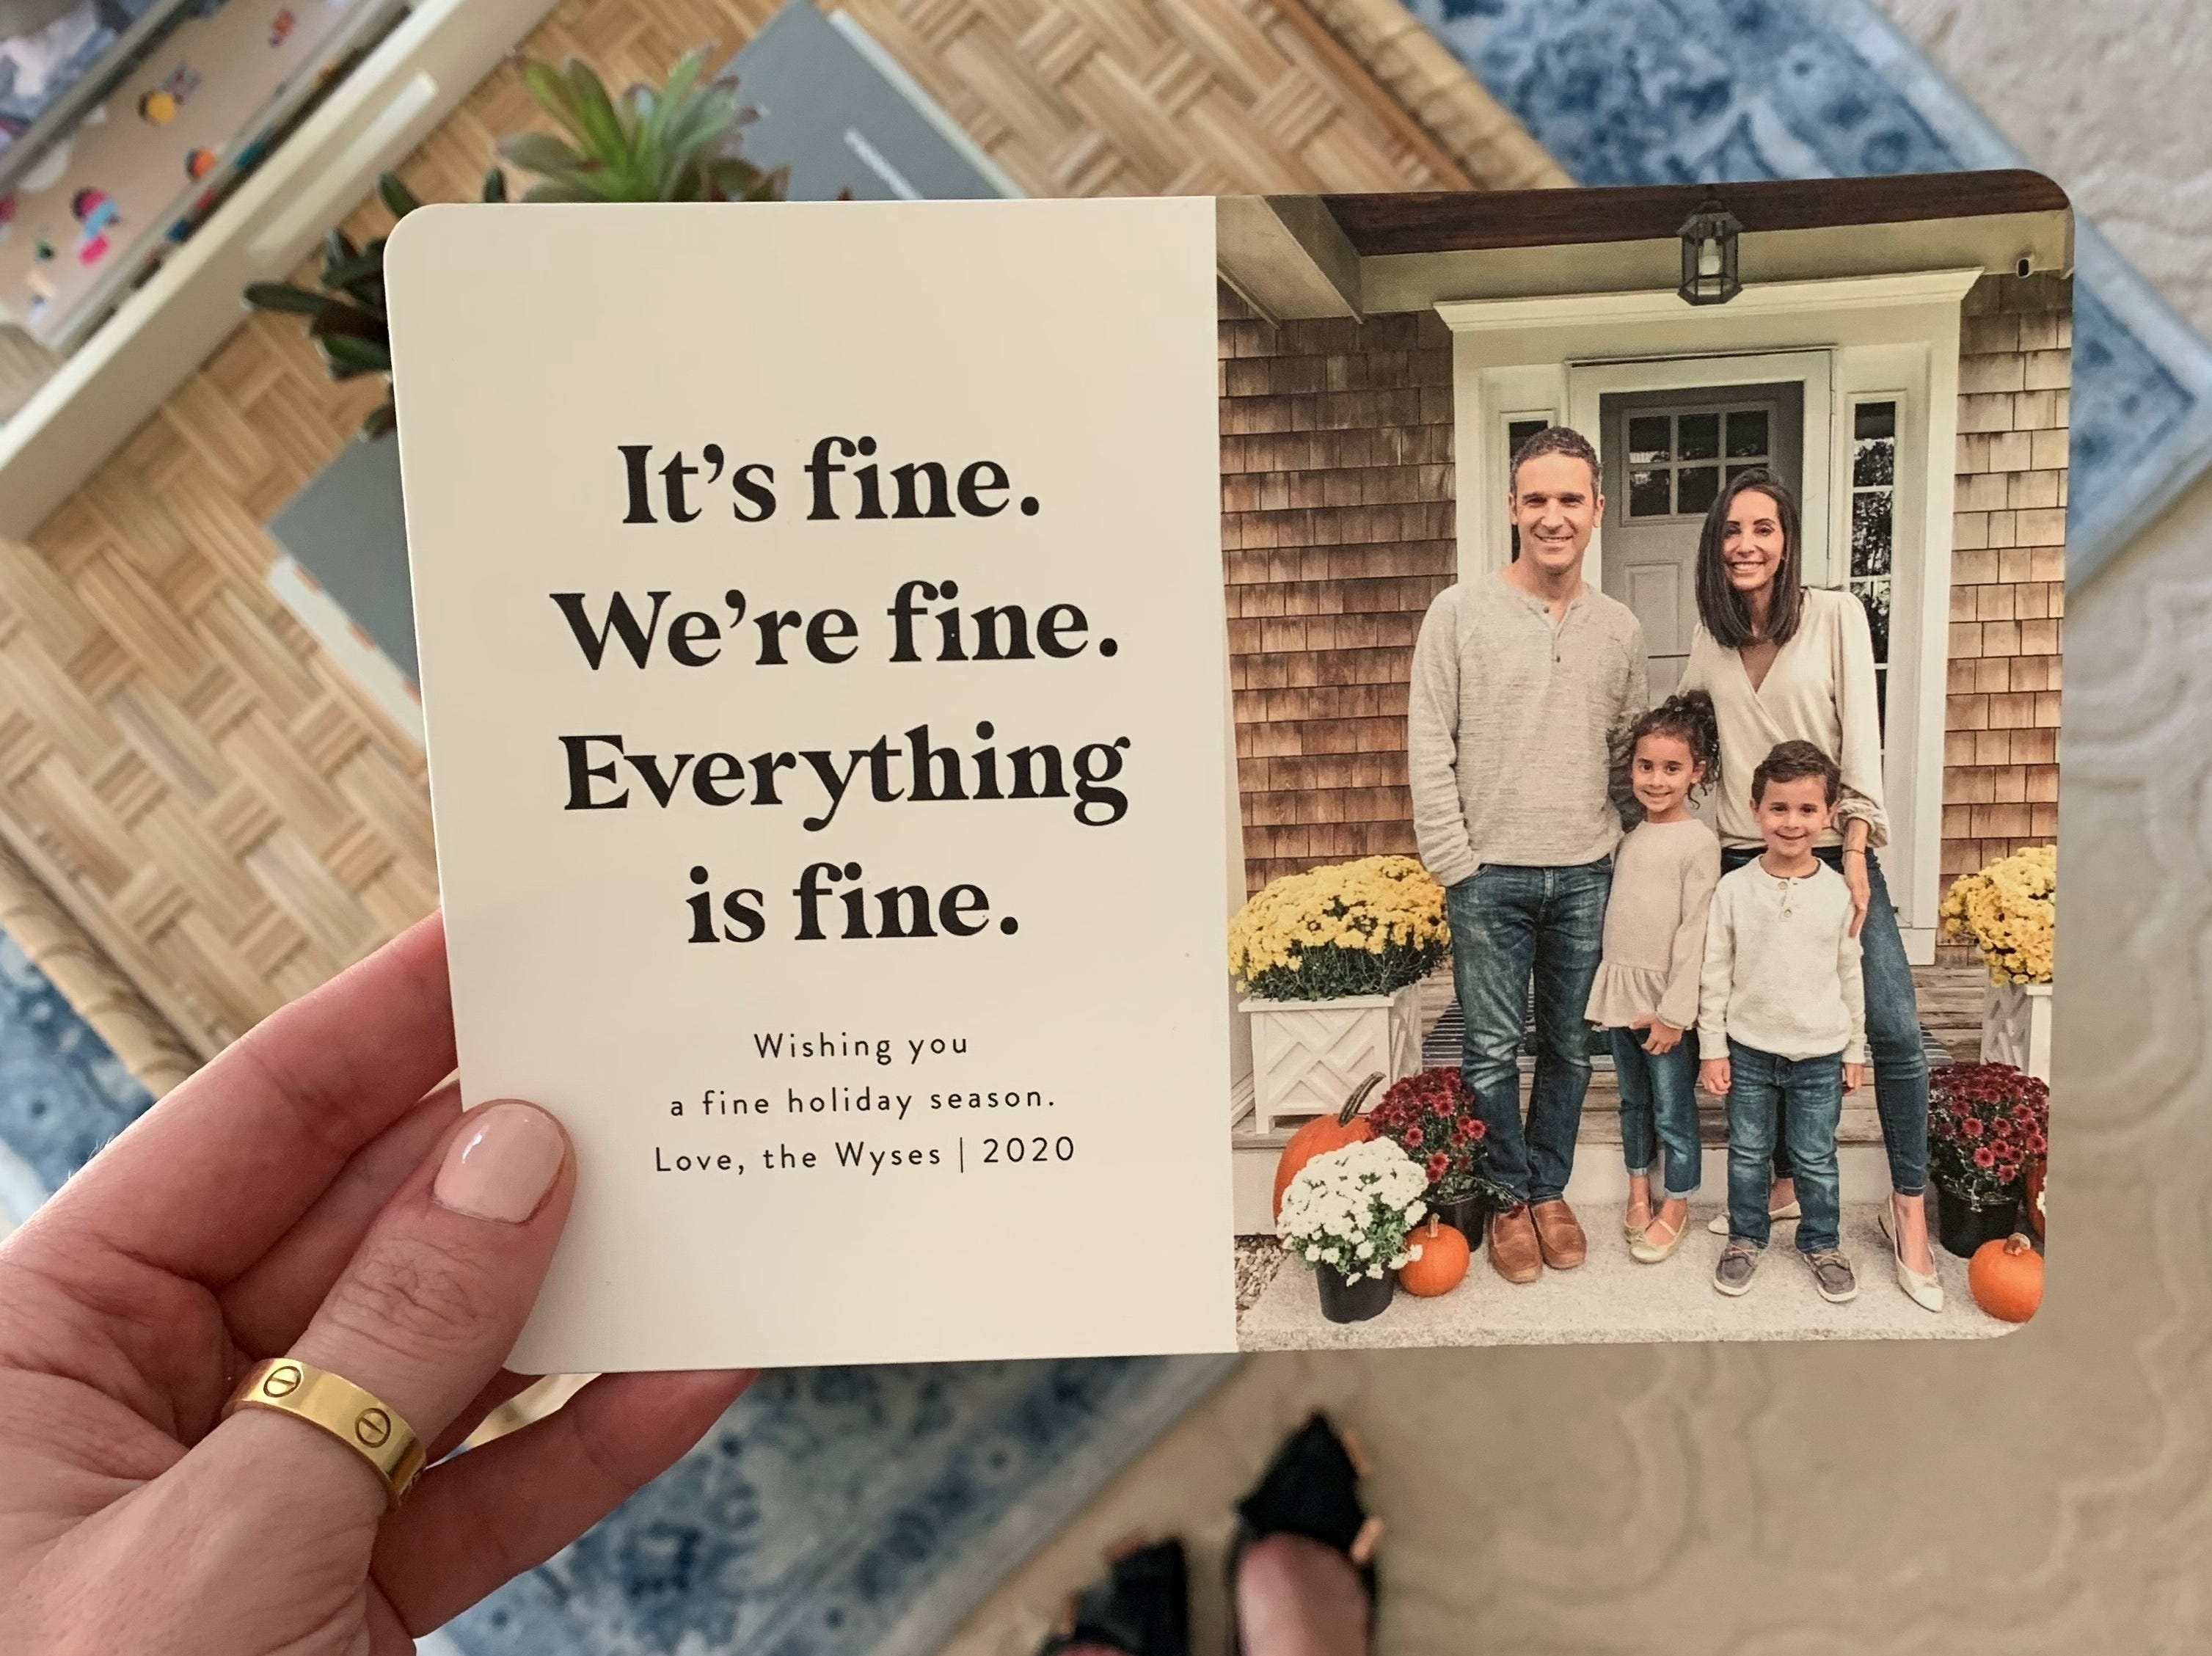 2020 Holiday Cards Sure Are Honest Wishing You A Fine Holiday Season